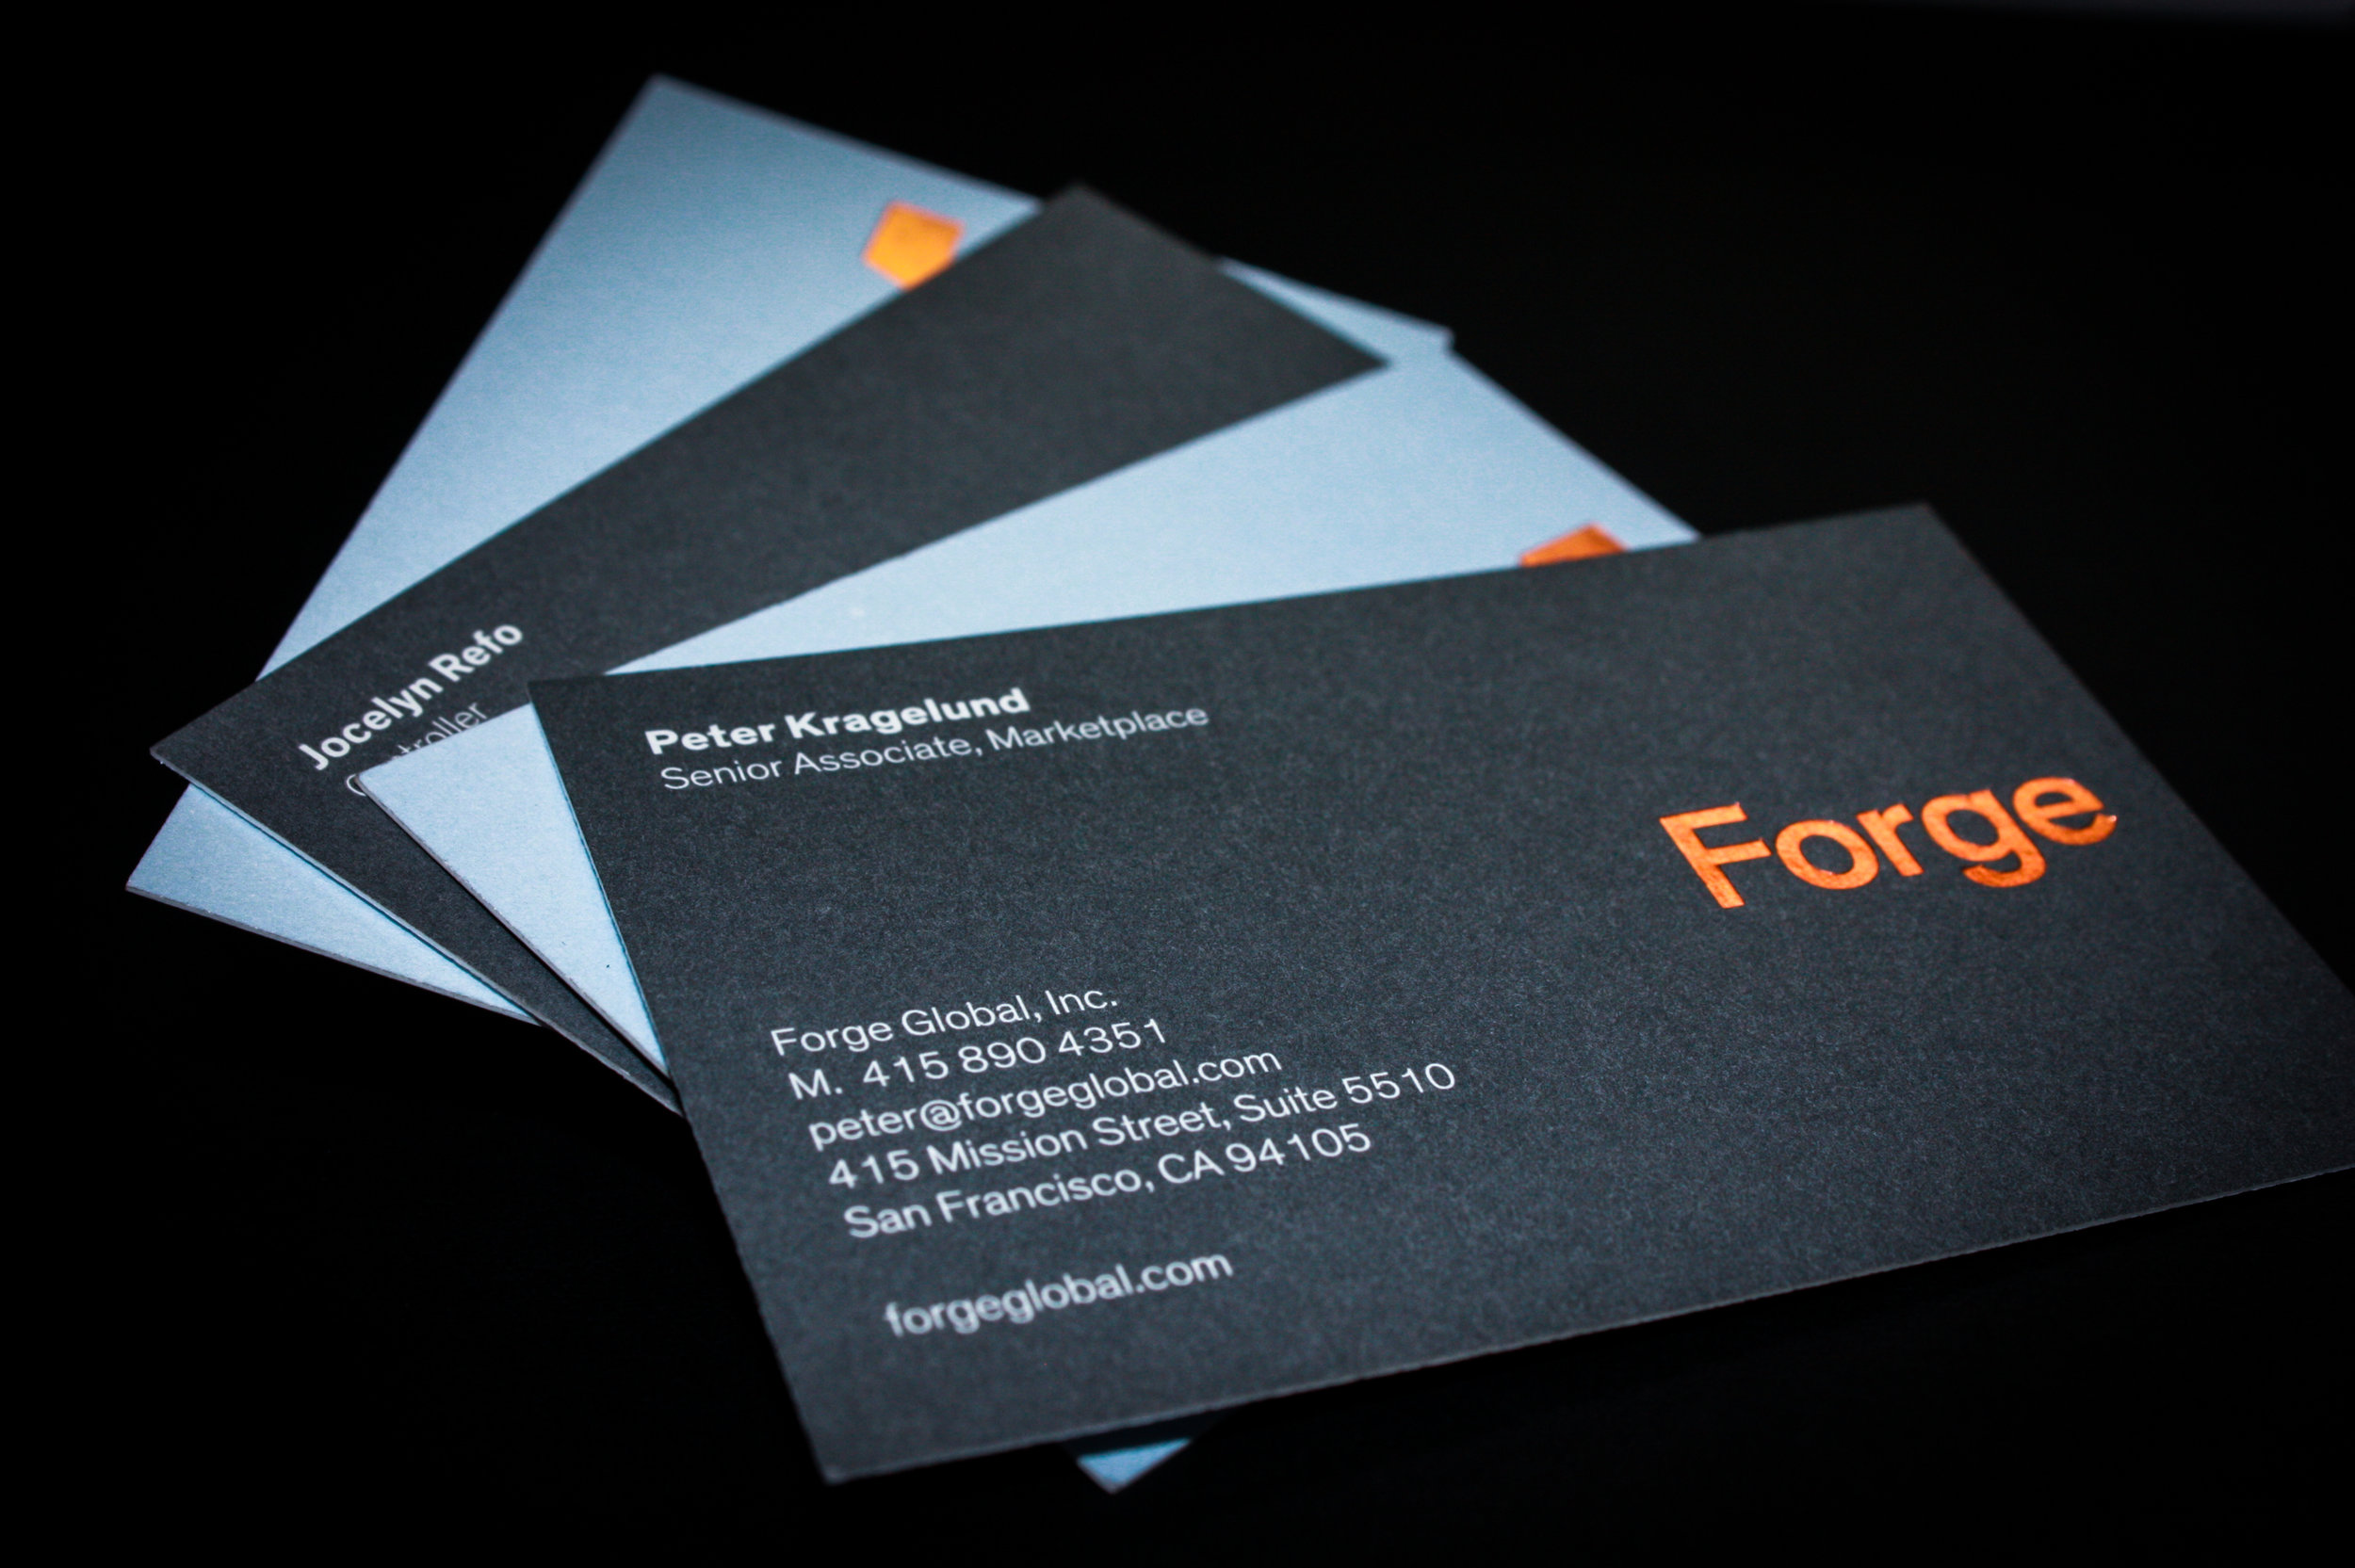 Forge Client:  Third Bay Letterpress  Complete business system, spot color printed and foiled.